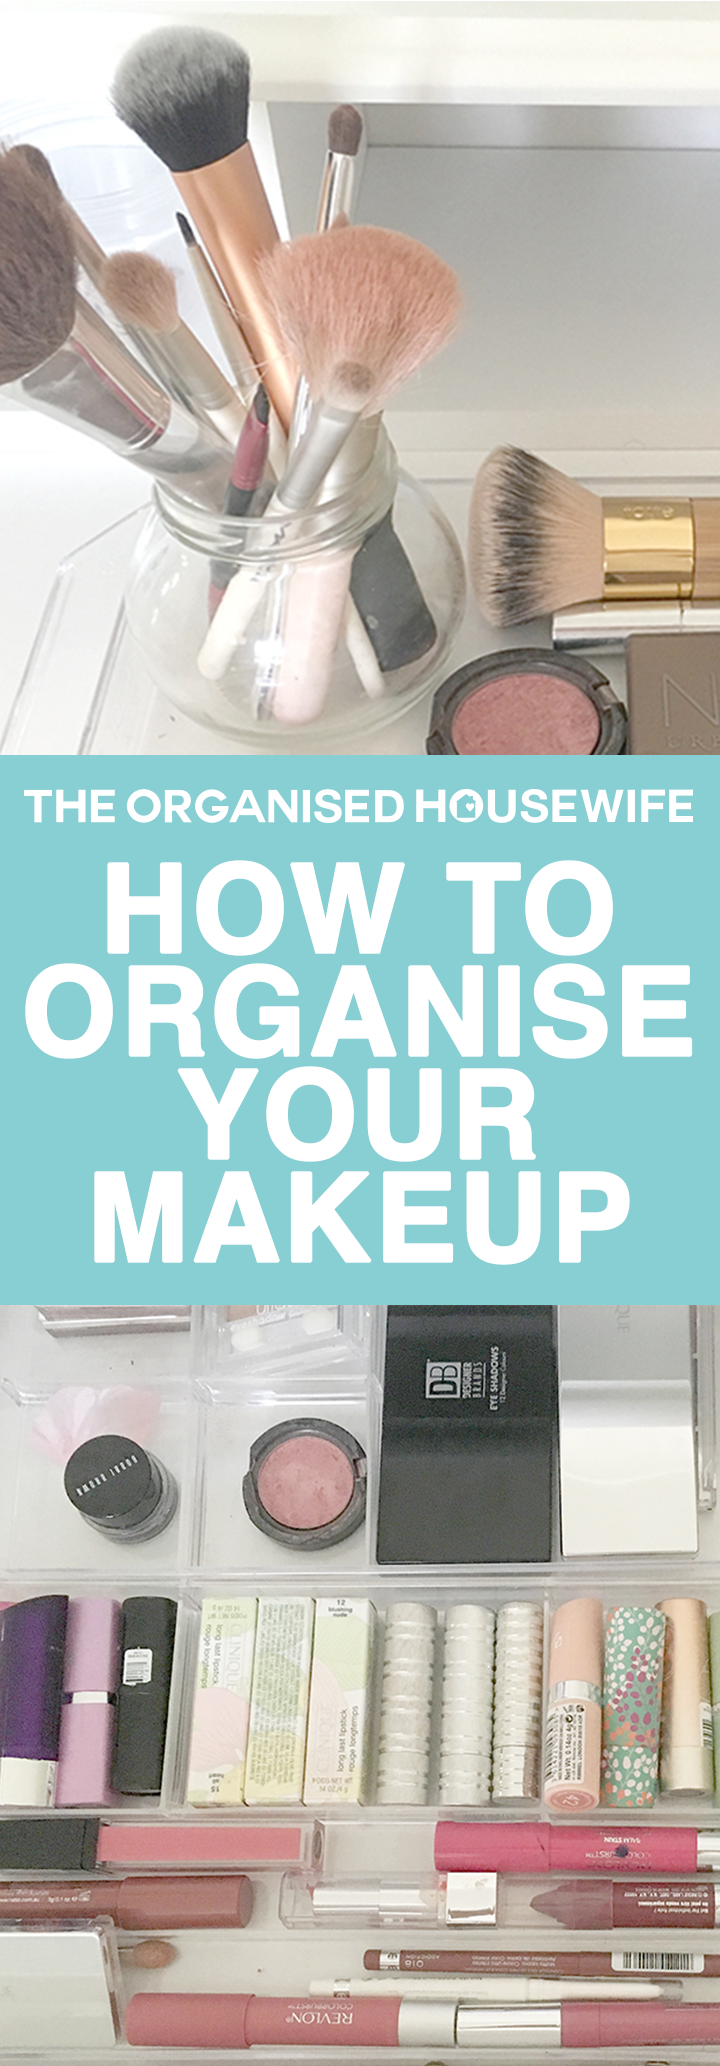 Makeup can easily become cluttered within the drawers, these tips are simple and effective to help organise your makeup.